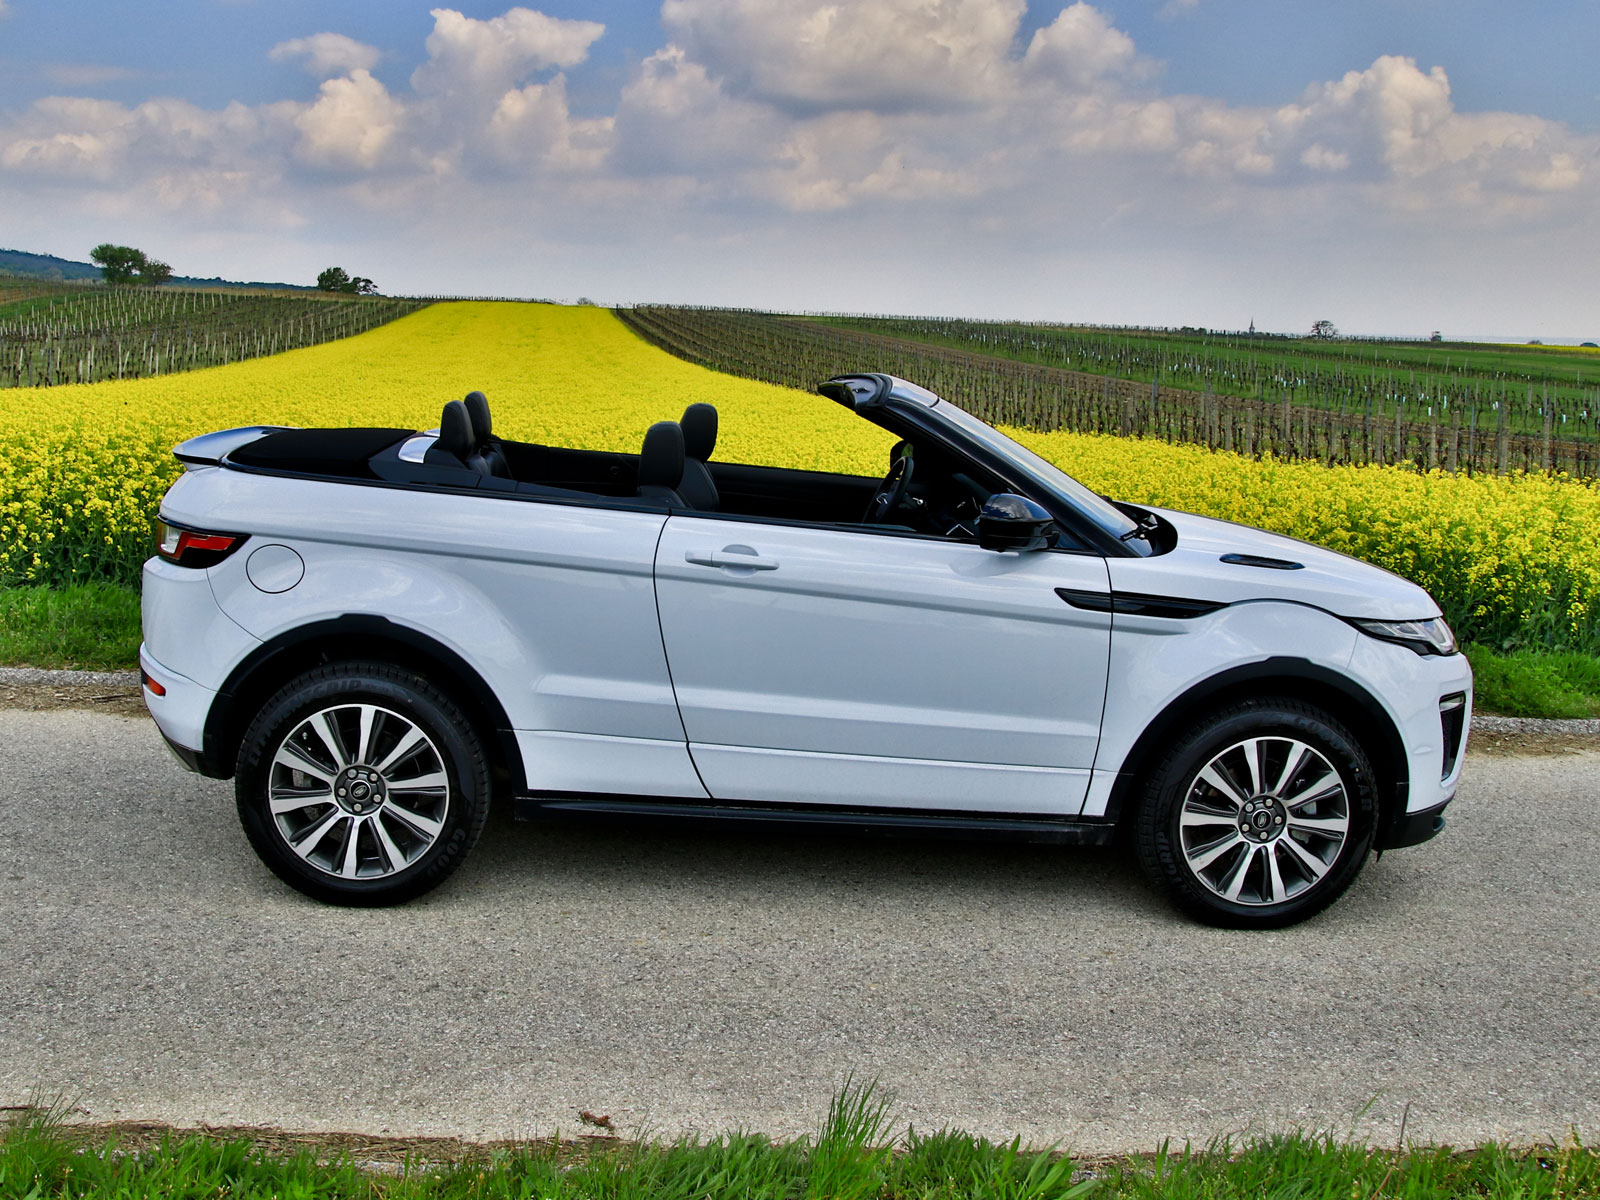 range rover evoque cabrio 2 0 td4 at hse dynamic. Black Bedroom Furniture Sets. Home Design Ideas